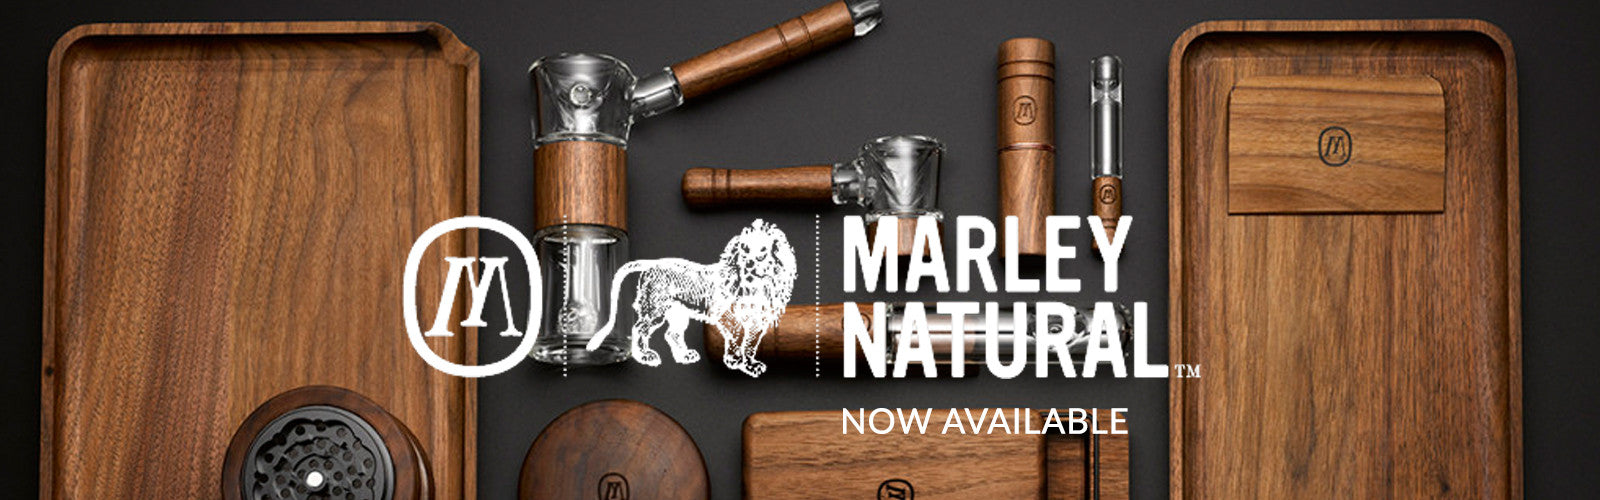 Marley Natural Now Available at Retro Active Smoke Shop